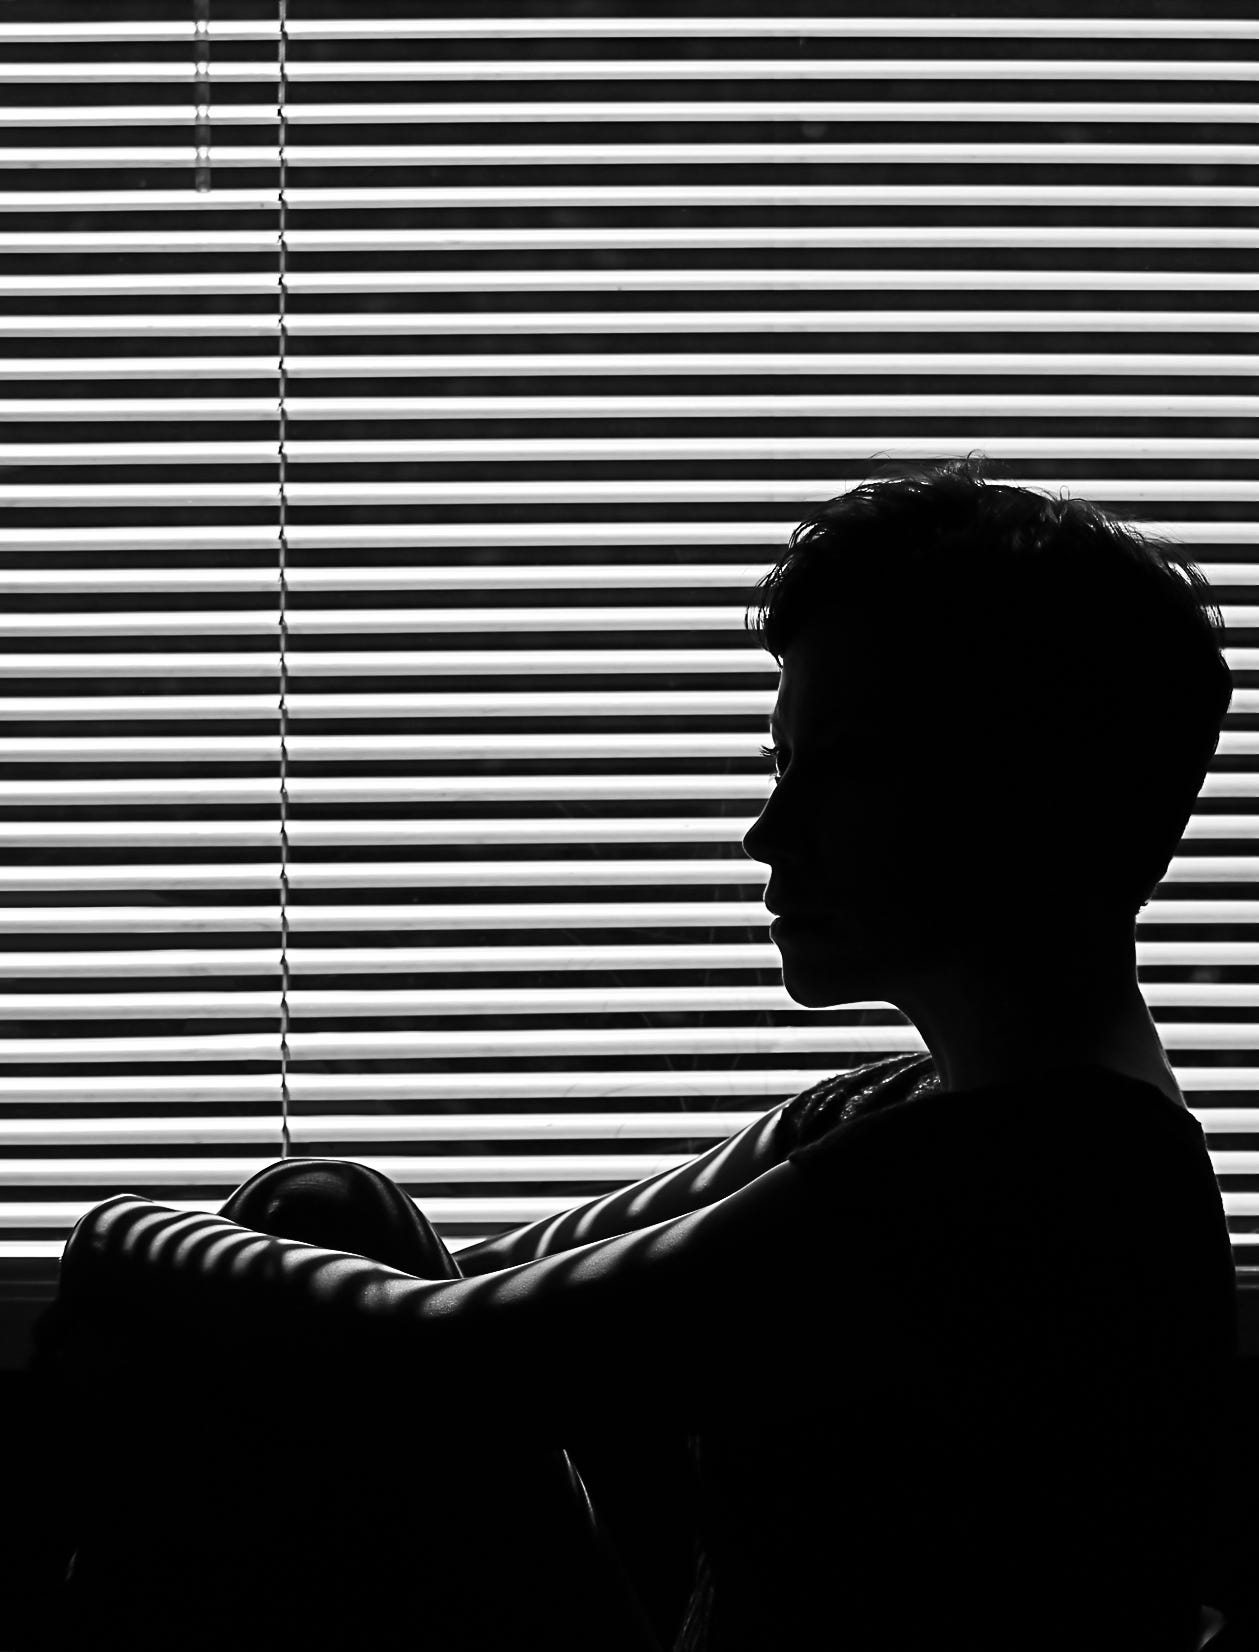 Someone siting alone in a dark room